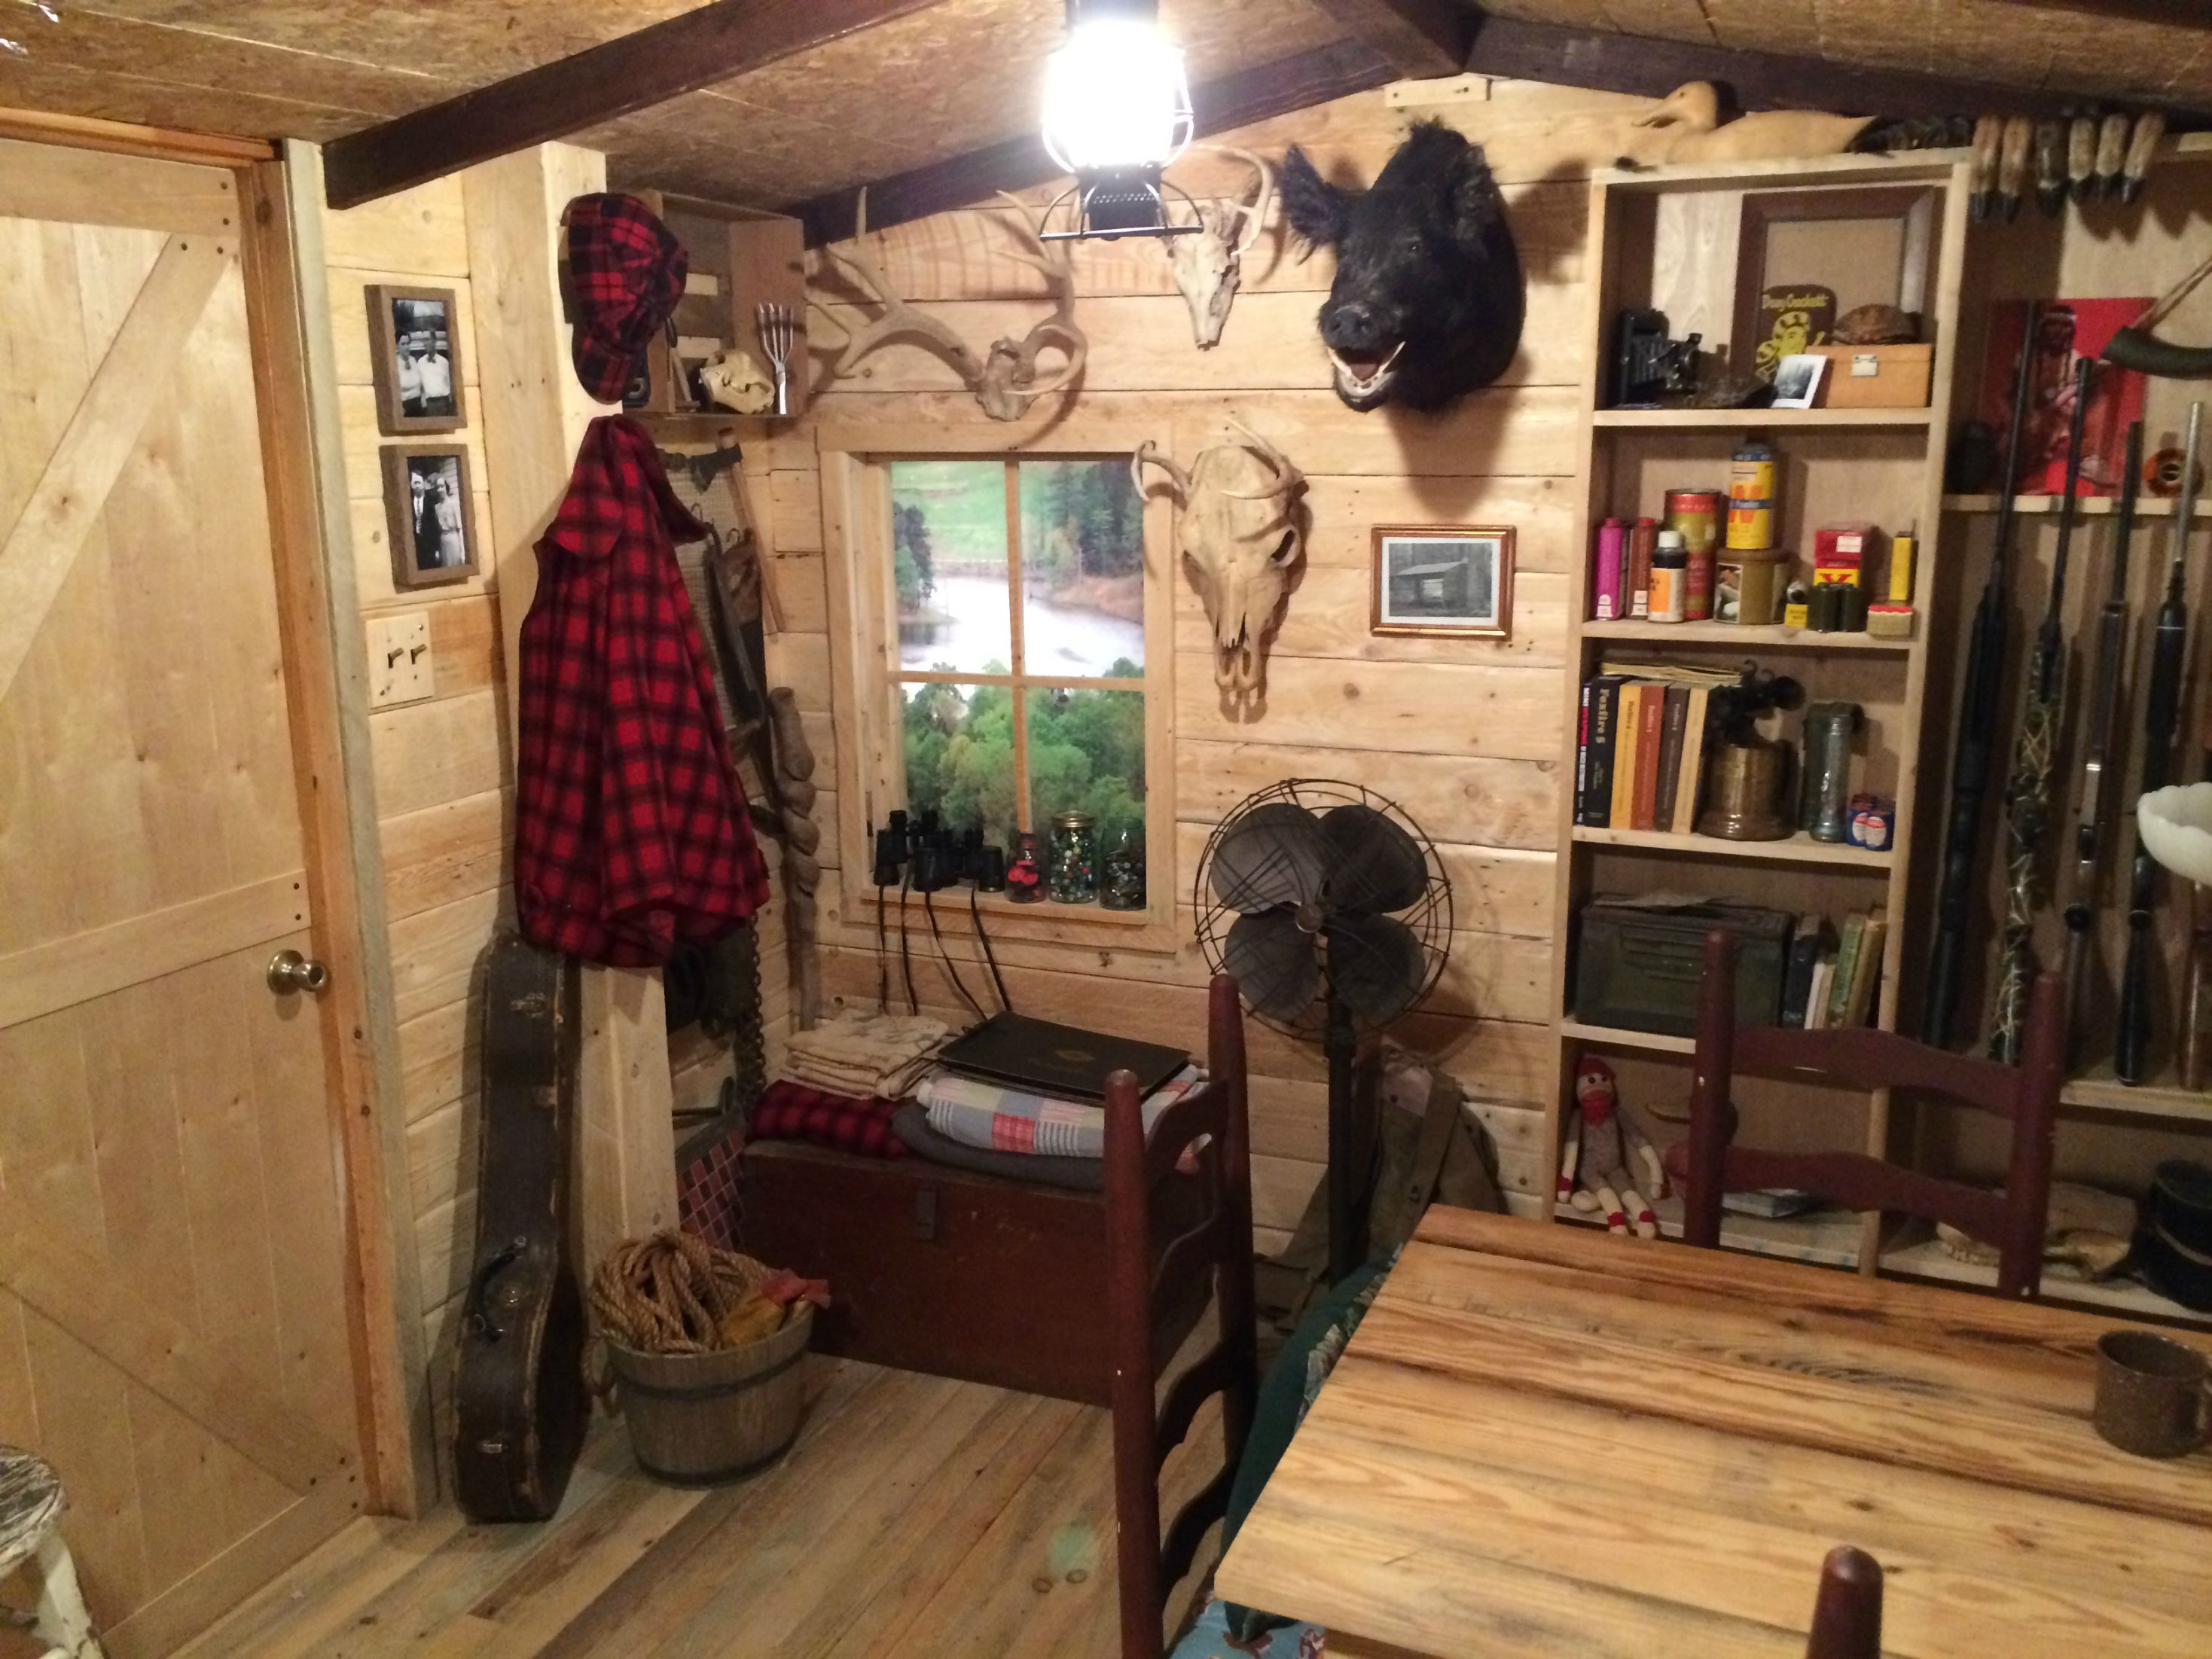 Man Cave Cabin Ideas : The man cave 'cabin' that has to be seen believed adventure